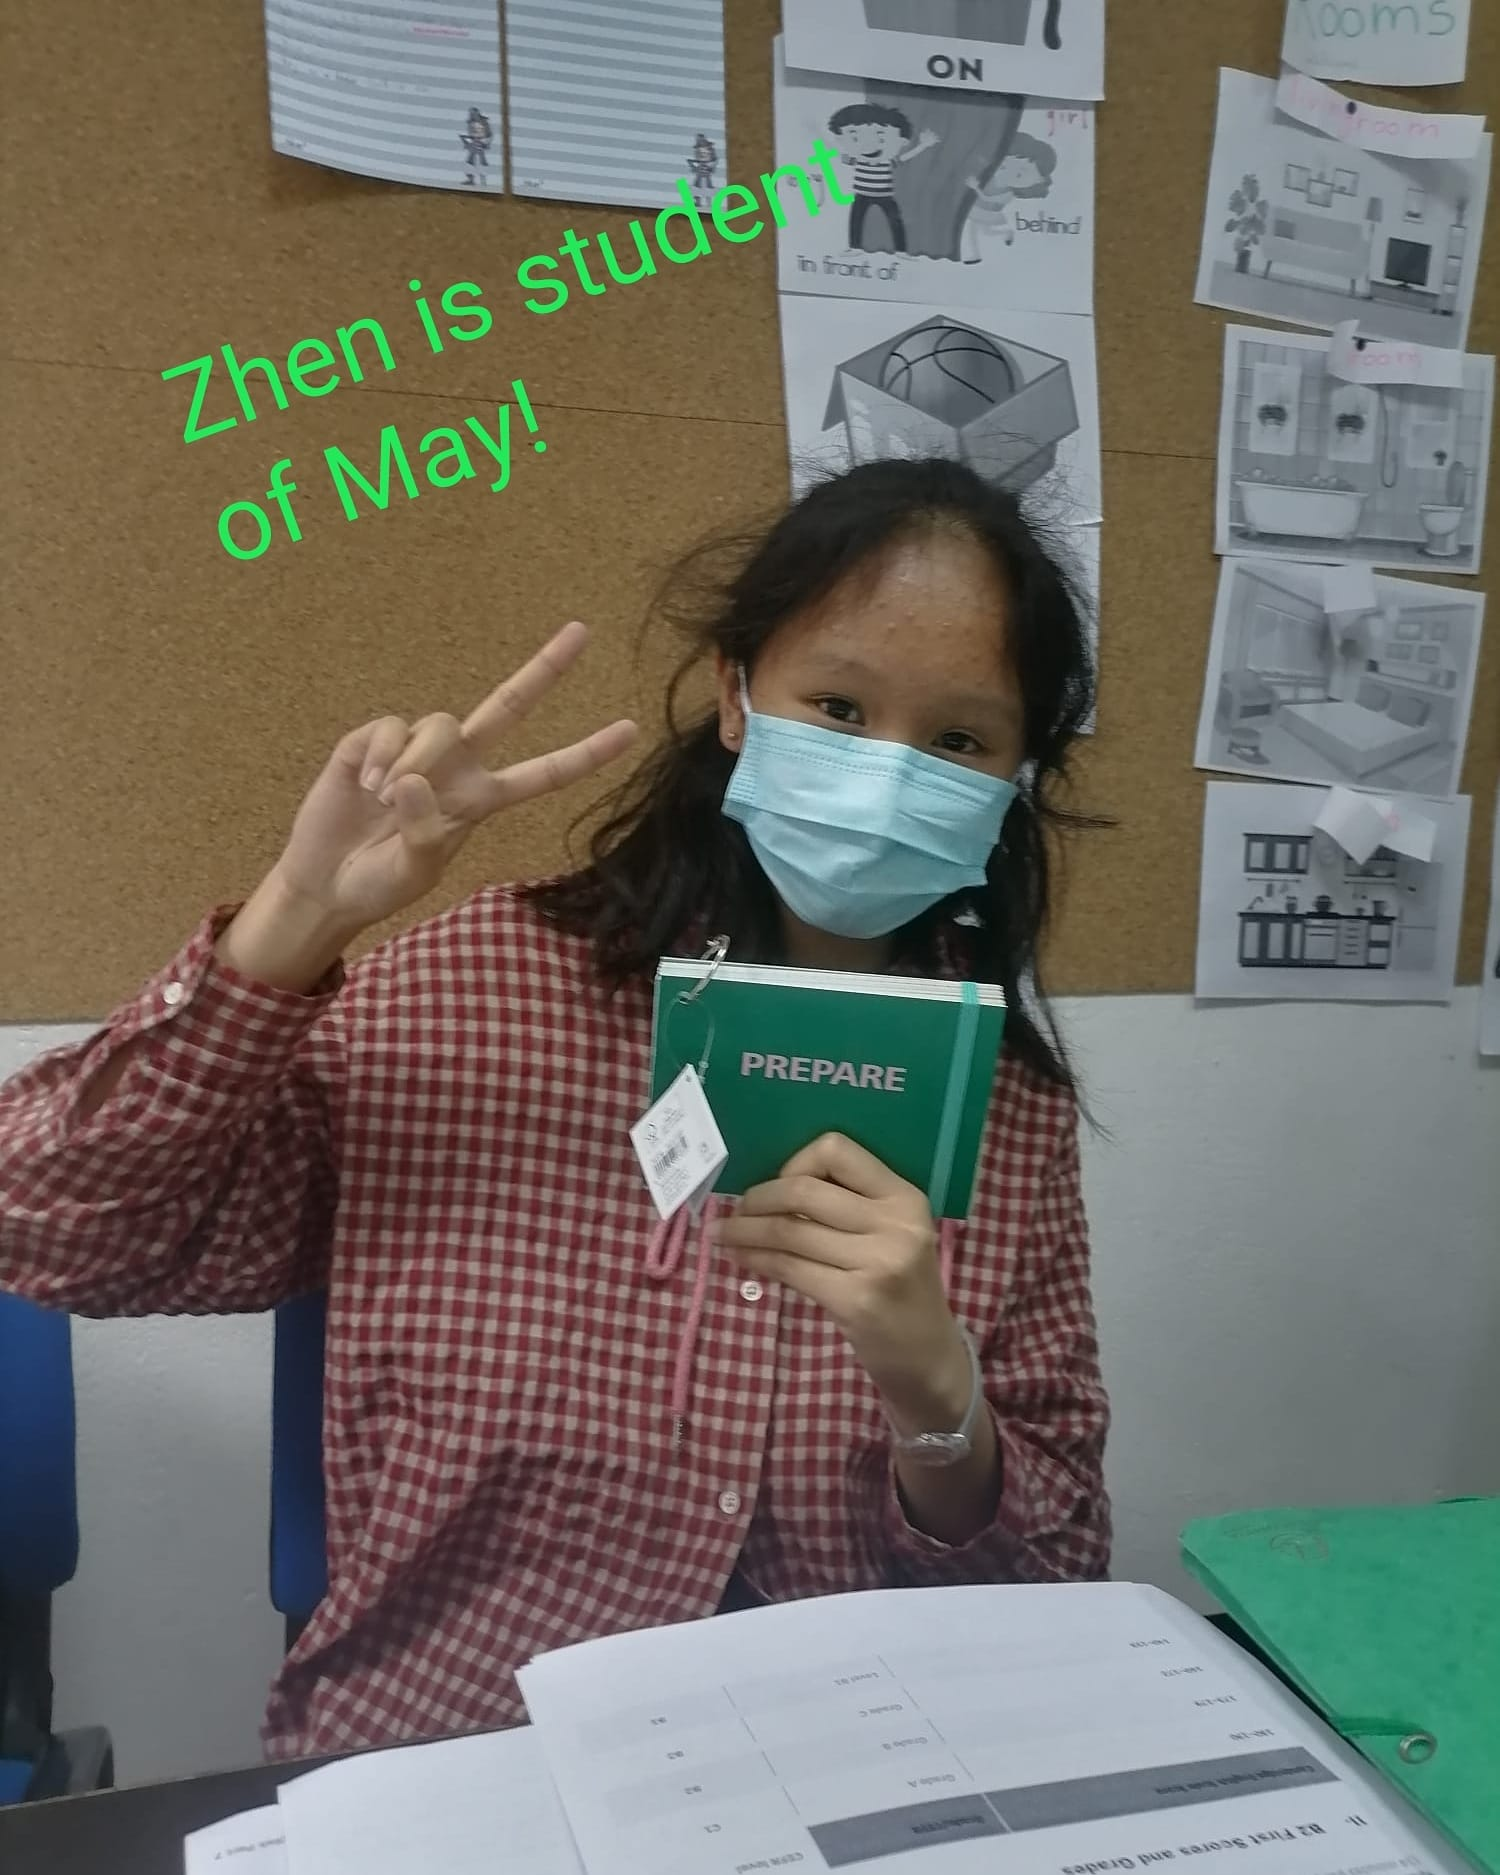 Student of May!